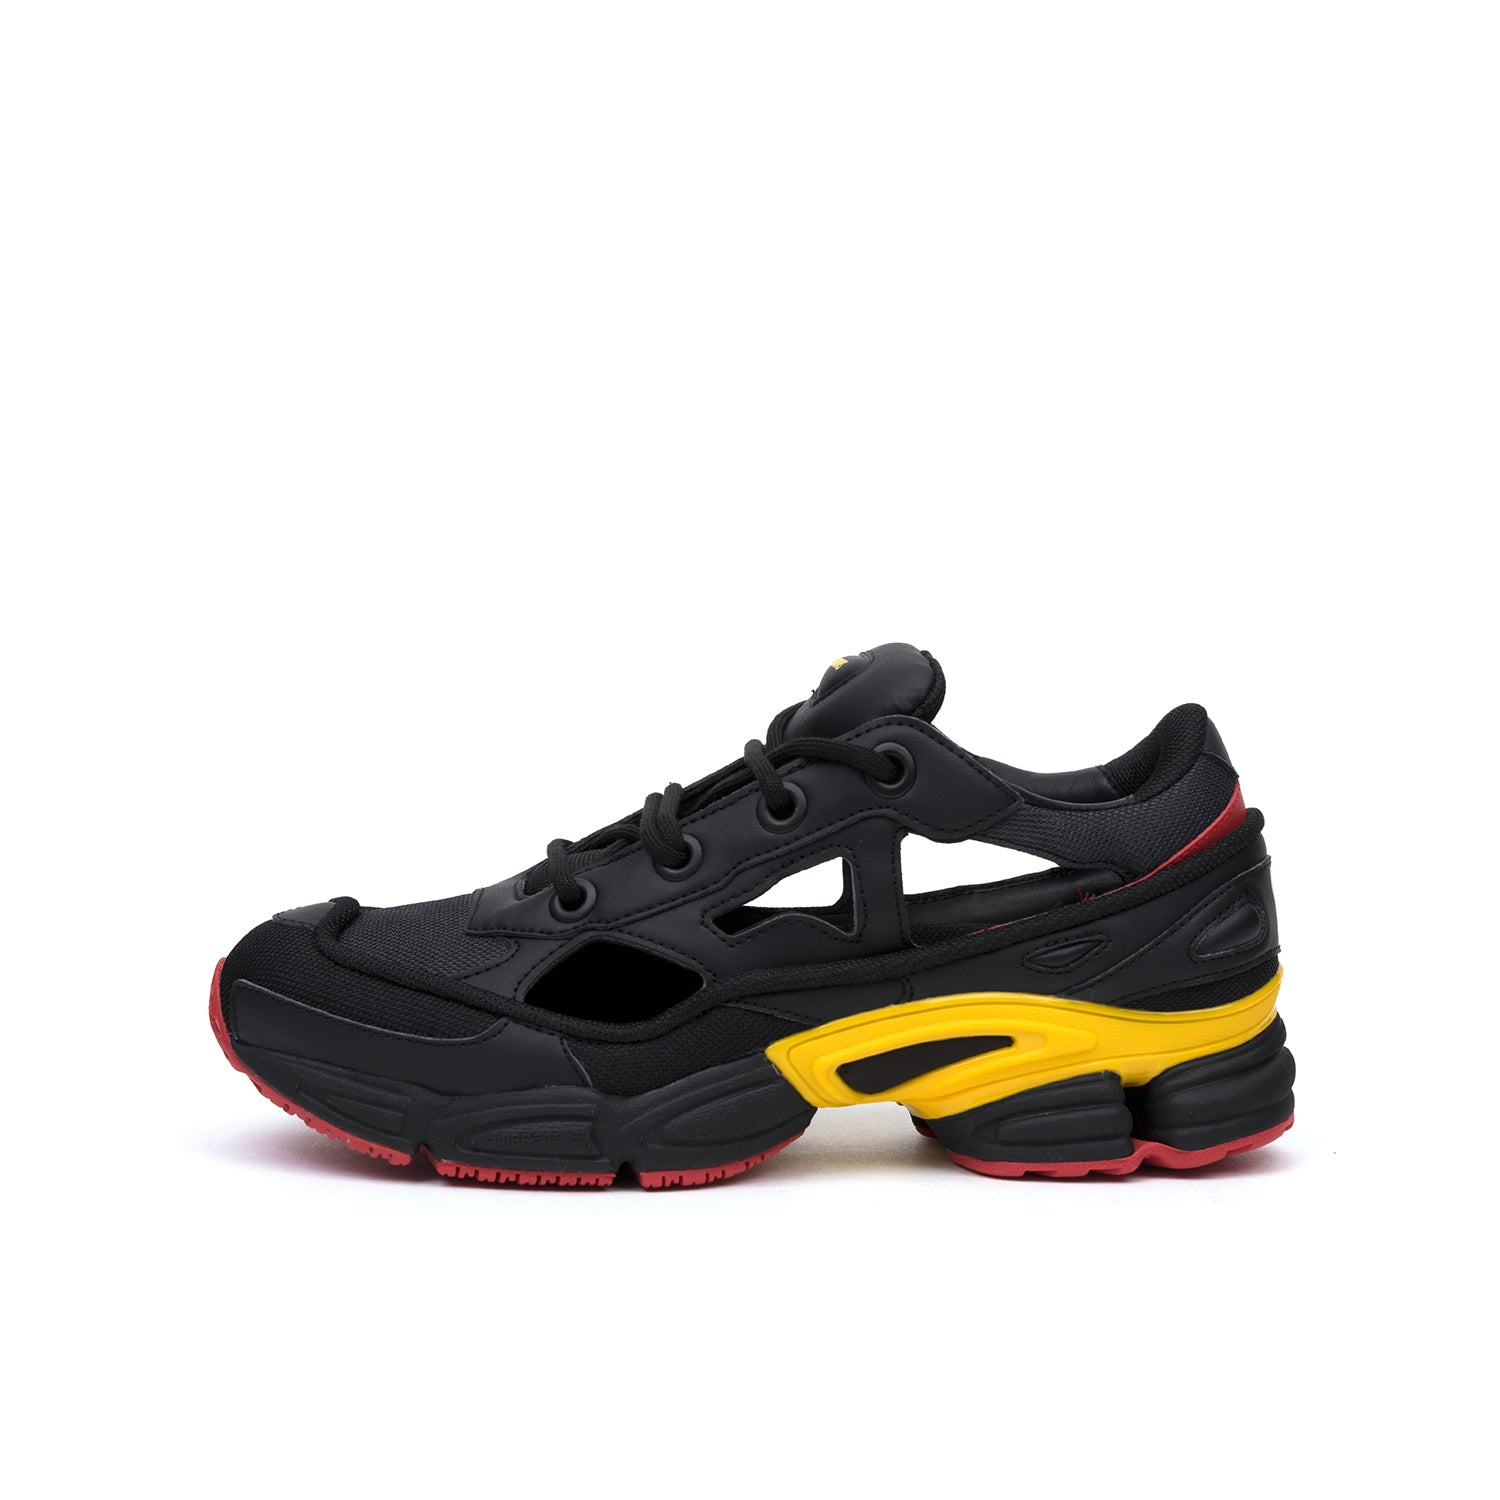 1cbe534926d0 adidas x Raf Simons RS Replicant Ozweego  Belgium Version  Black Gold